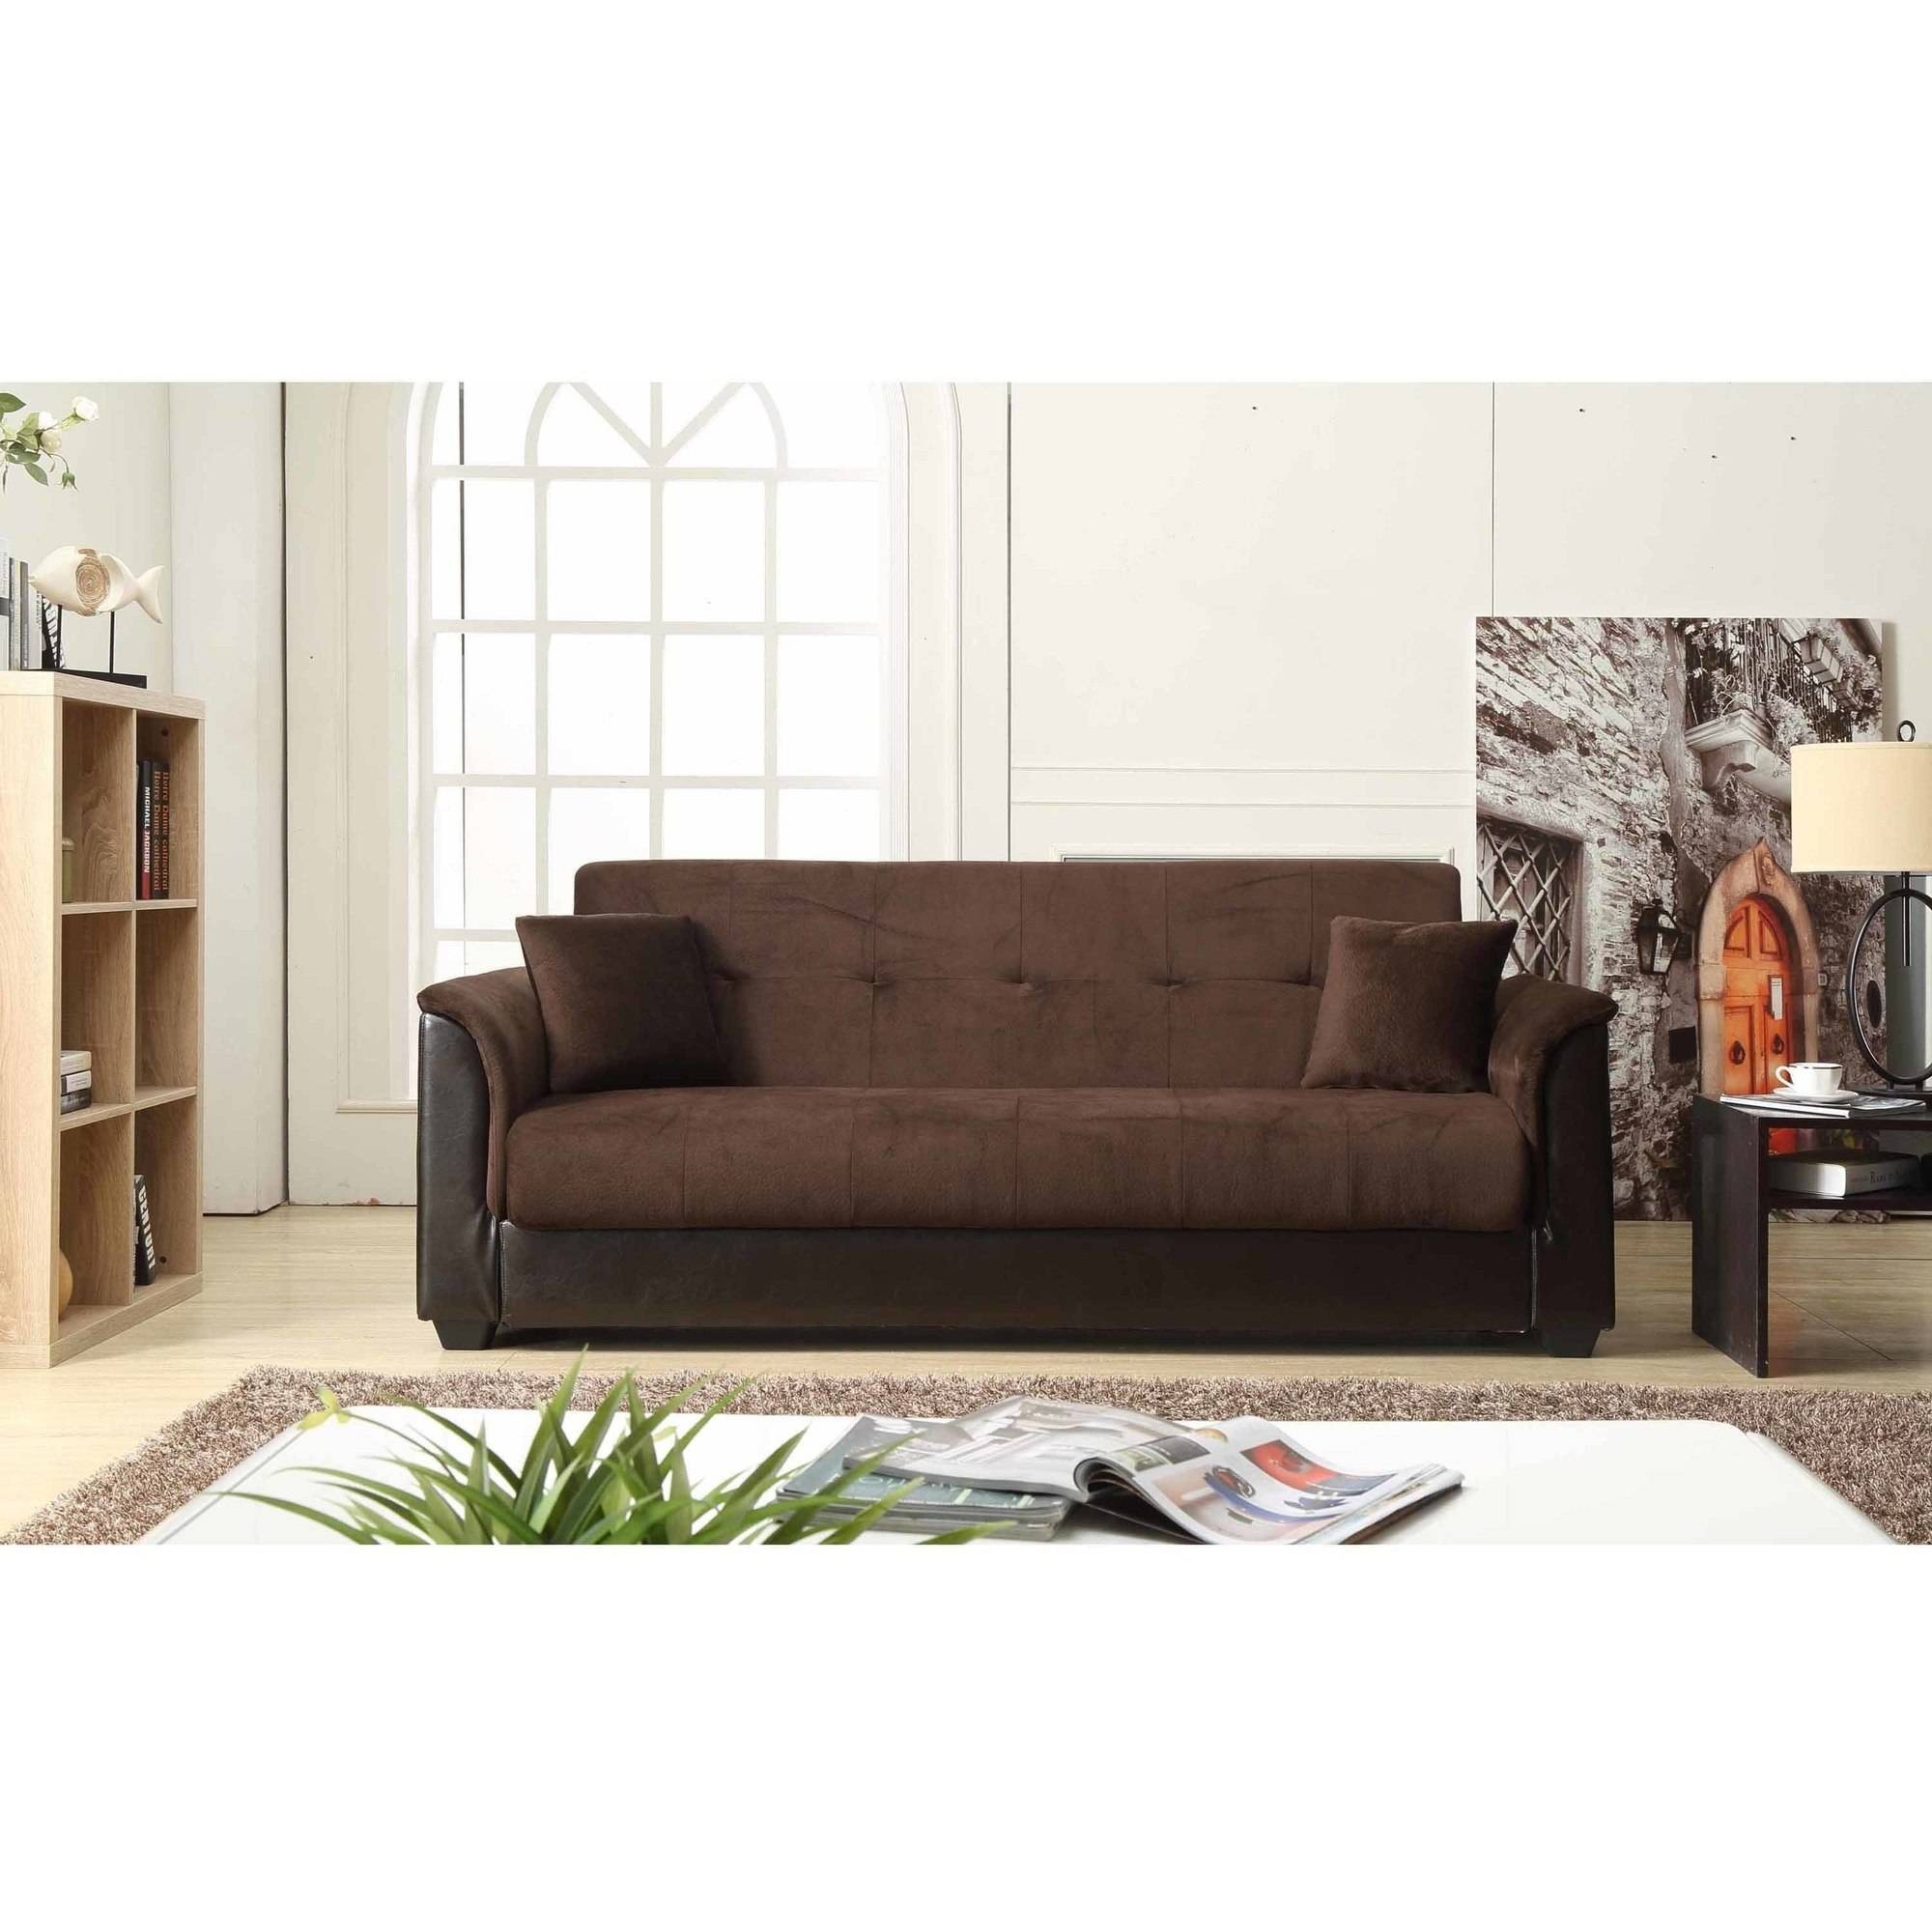 Nathaniel Home Melanie Champion Futon Sofa with Storage, Mutliple Colors